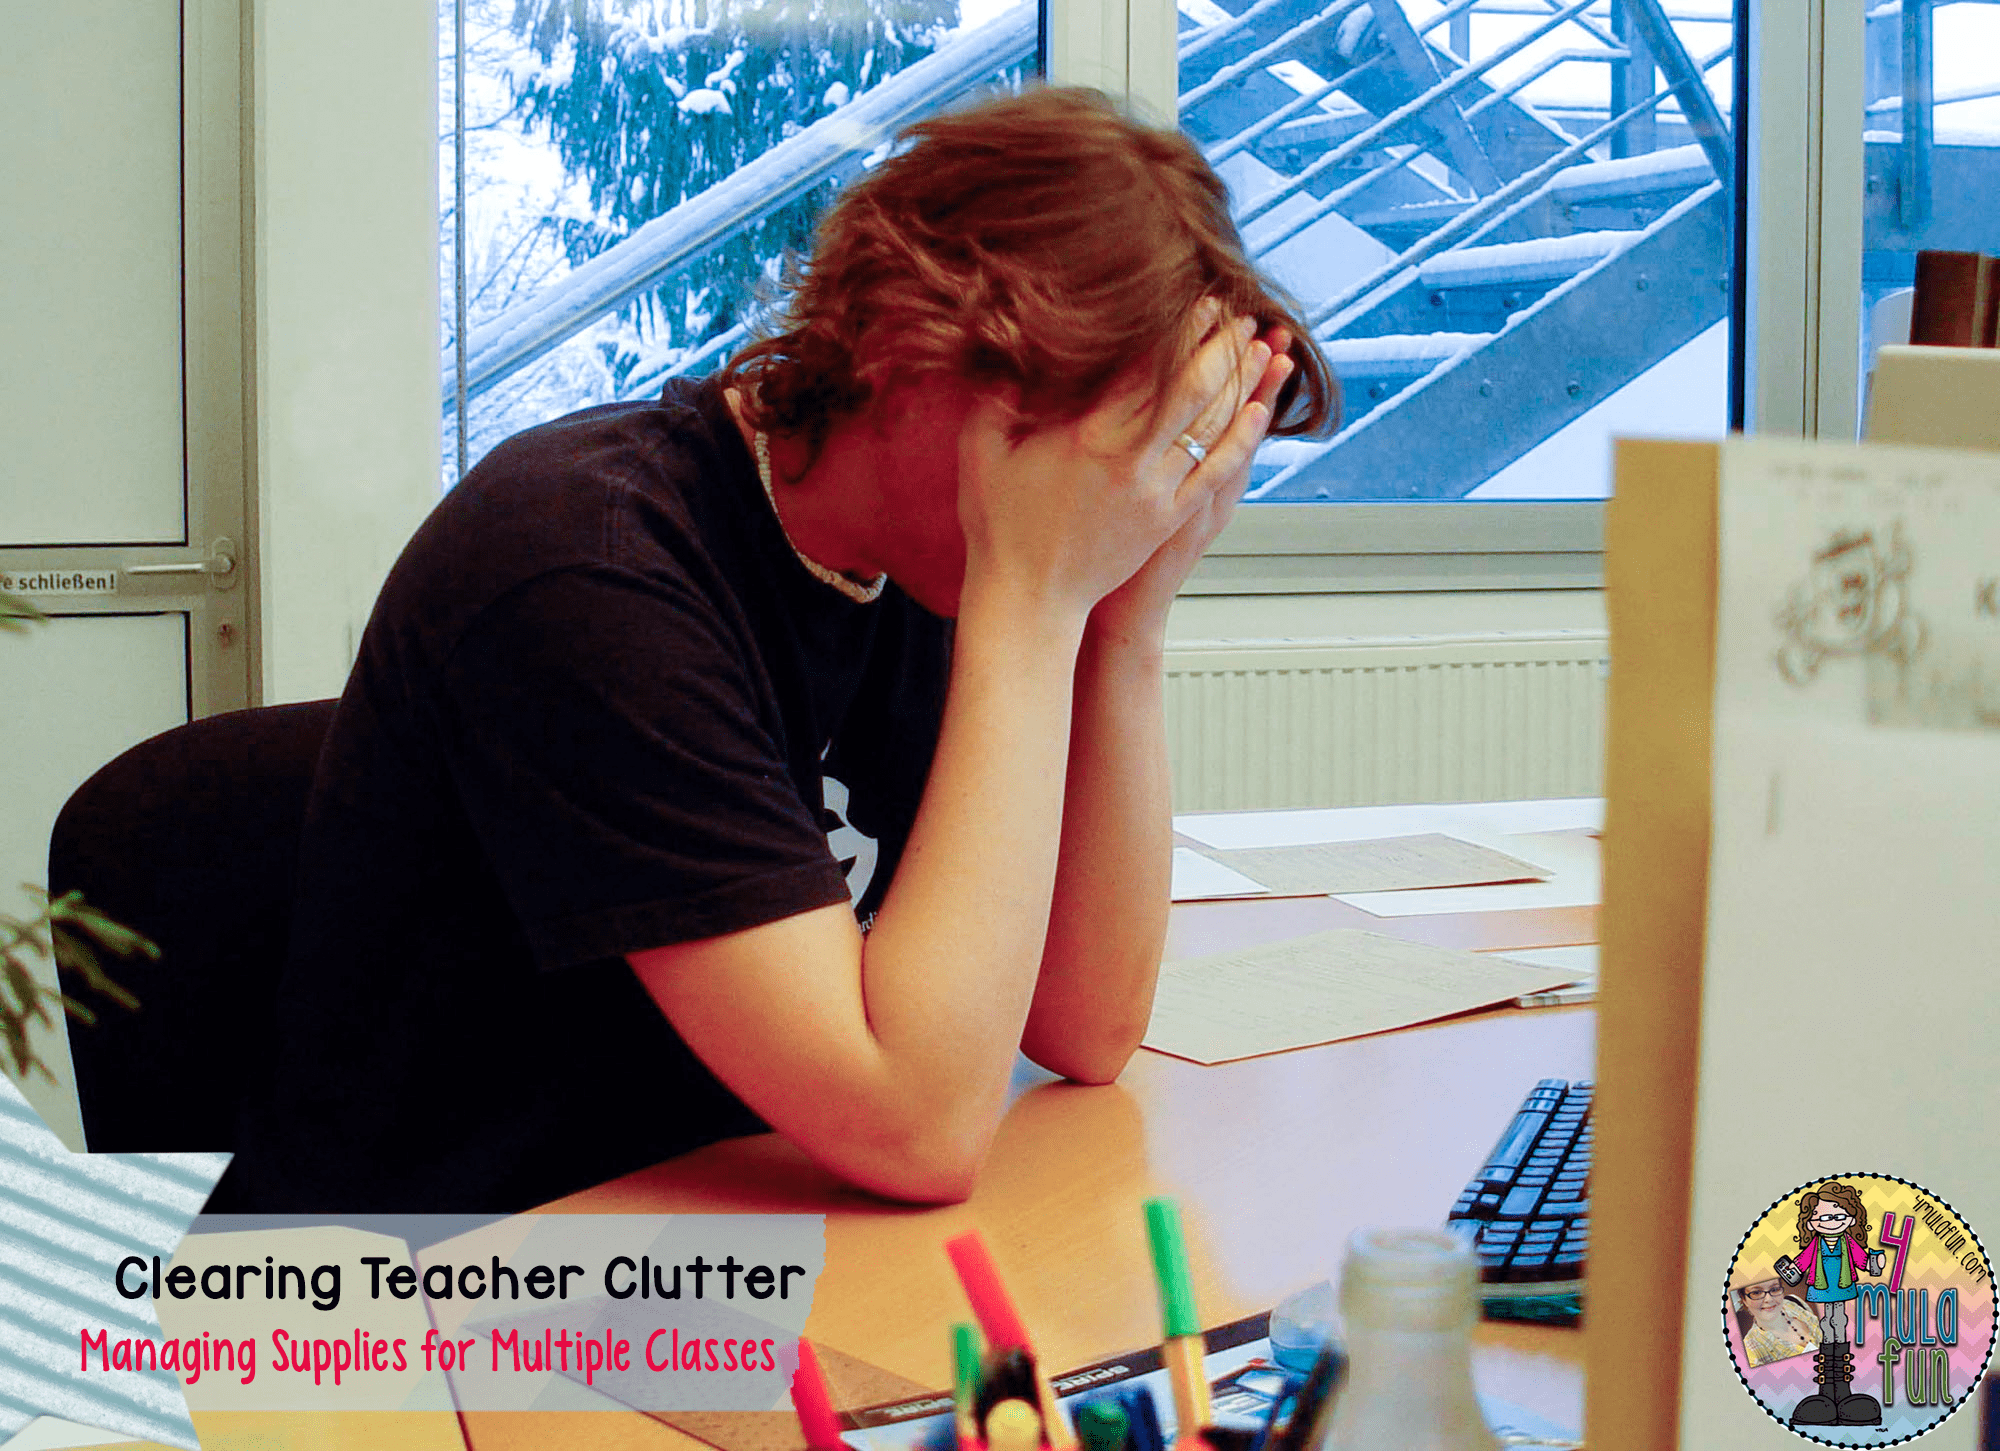 Clearing Teacher Clutter- Managing Supplies for Classes